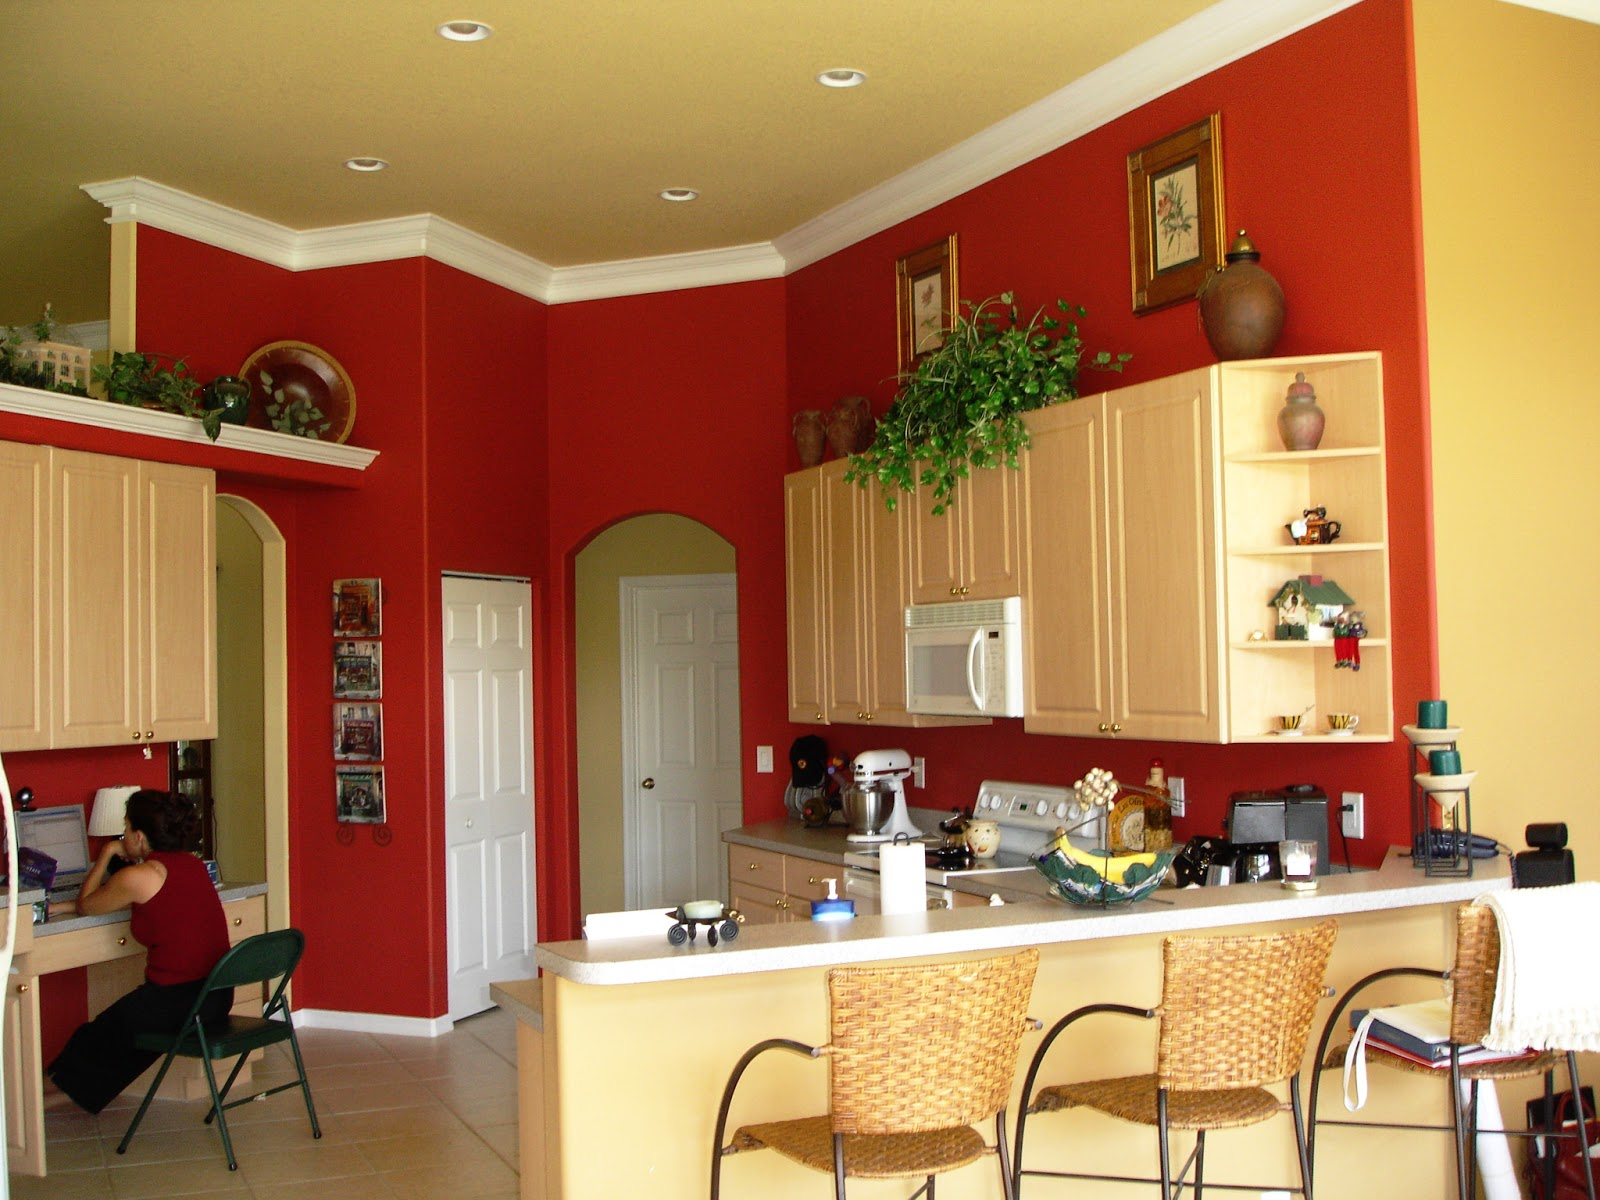 rooms and kitchens if you ask me red looks great in many areas